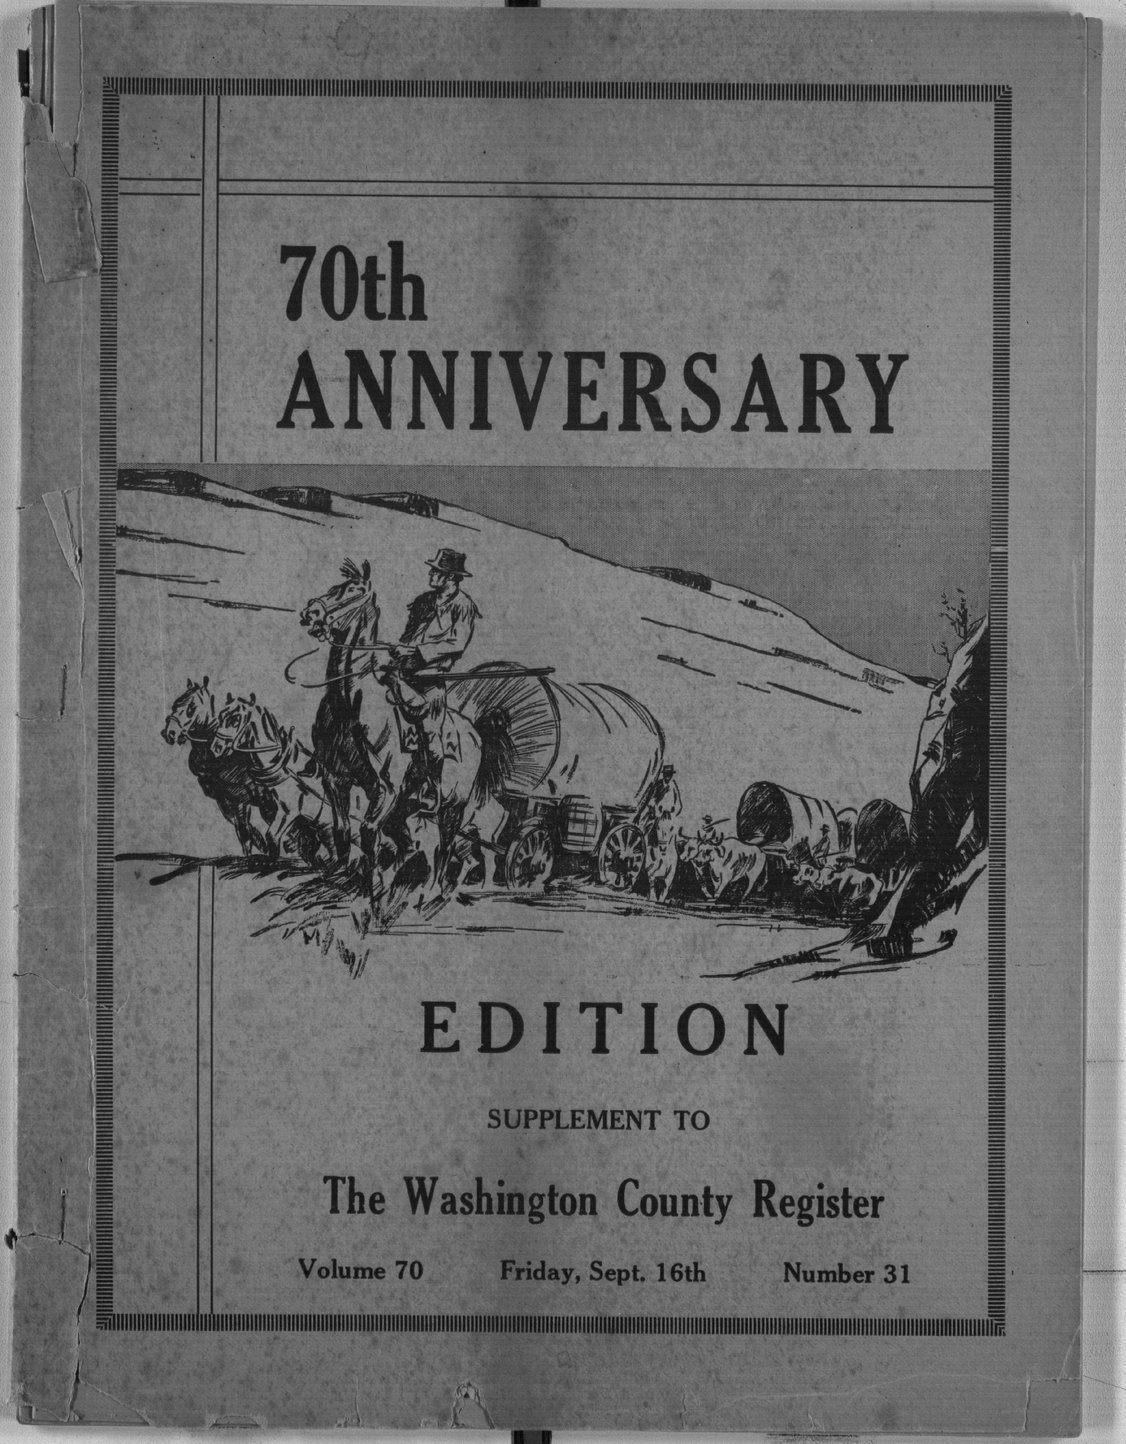 70th anniversary edition supplement to the Washington County Register - Front Cover